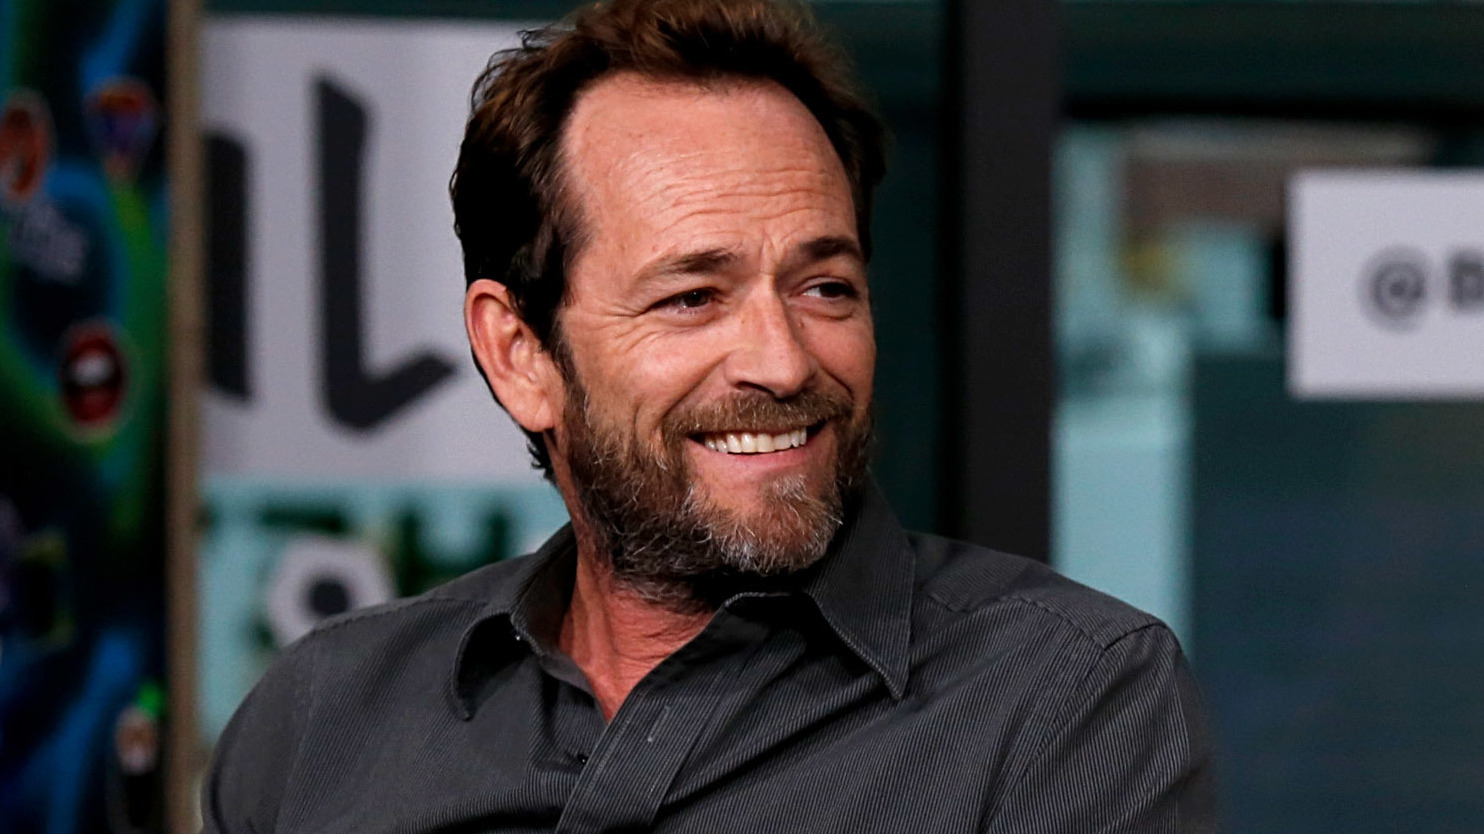 'Riverdale' actor Luke Perry passes away after suffering stroke, he was 52